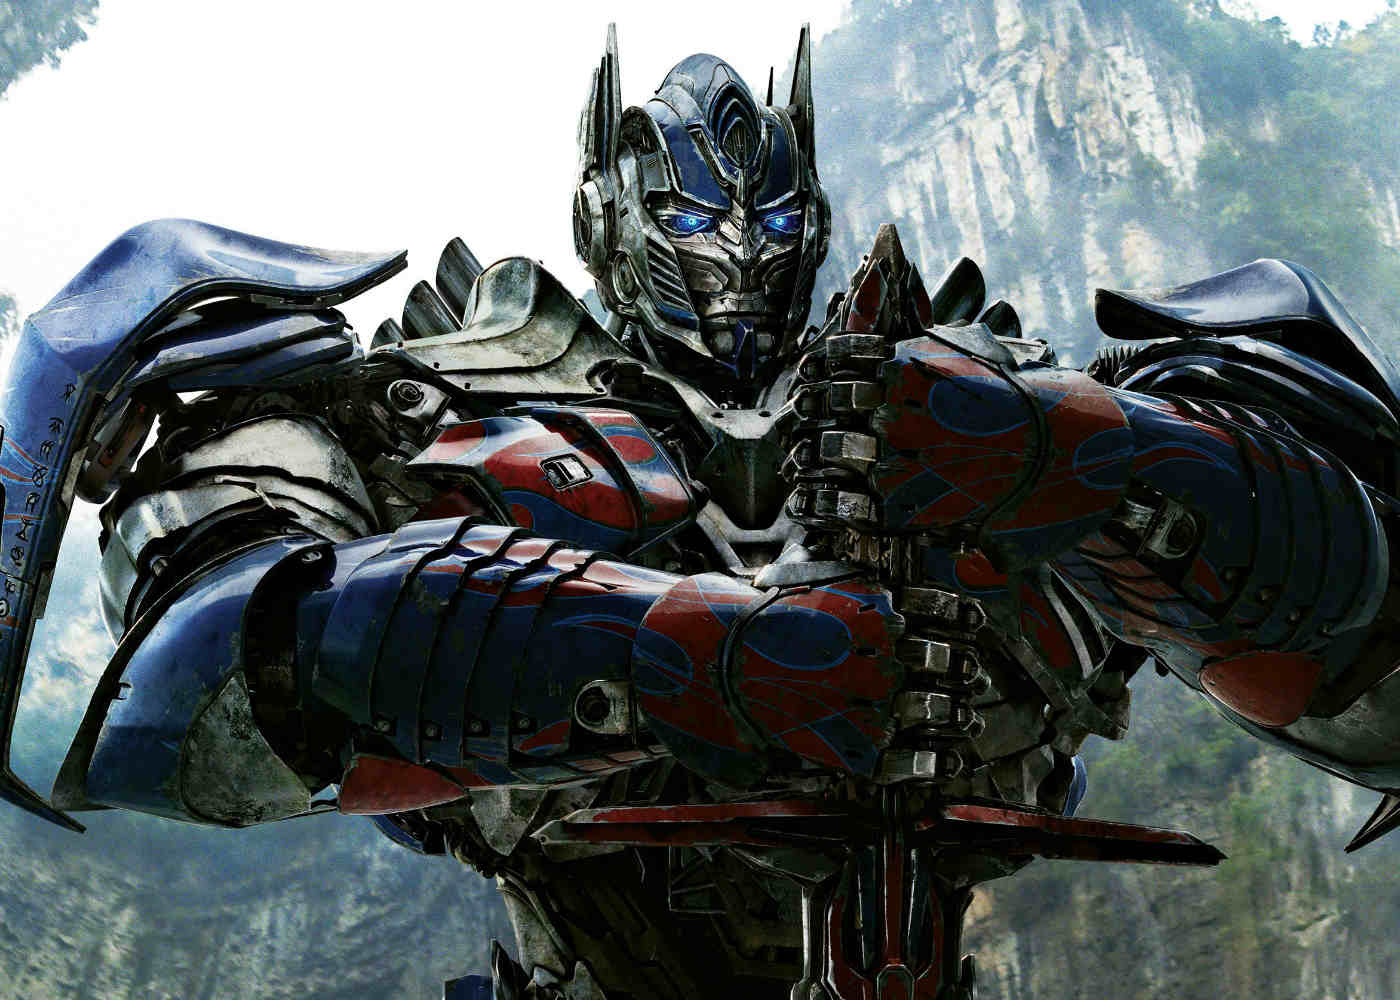 Review: Is Transformers: The Last Knight More Overblown Bayhem?